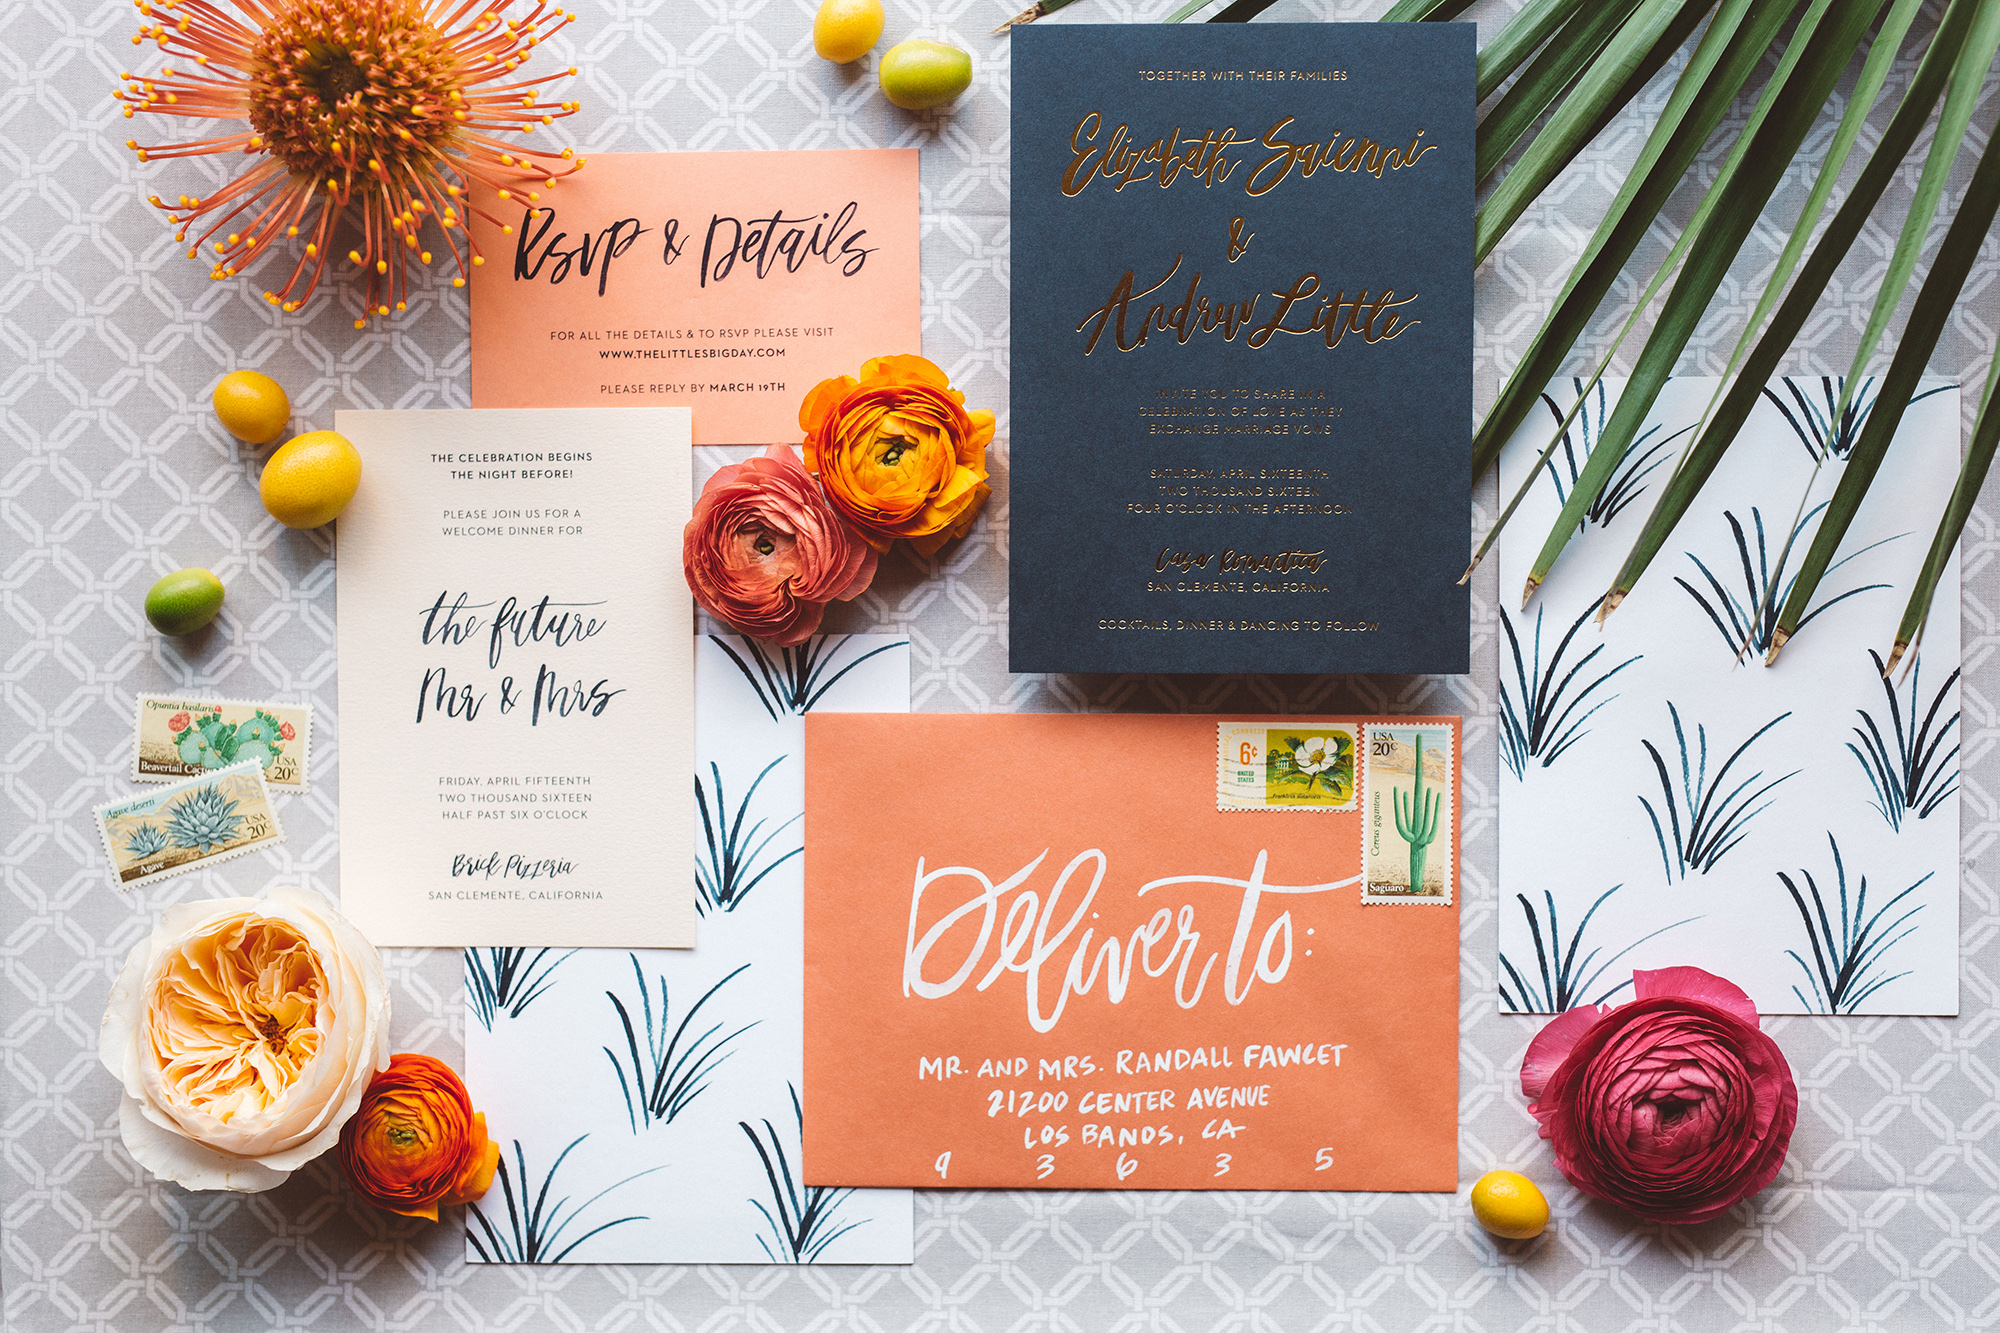 Bright peach and navy wedding invitations with calligraphy